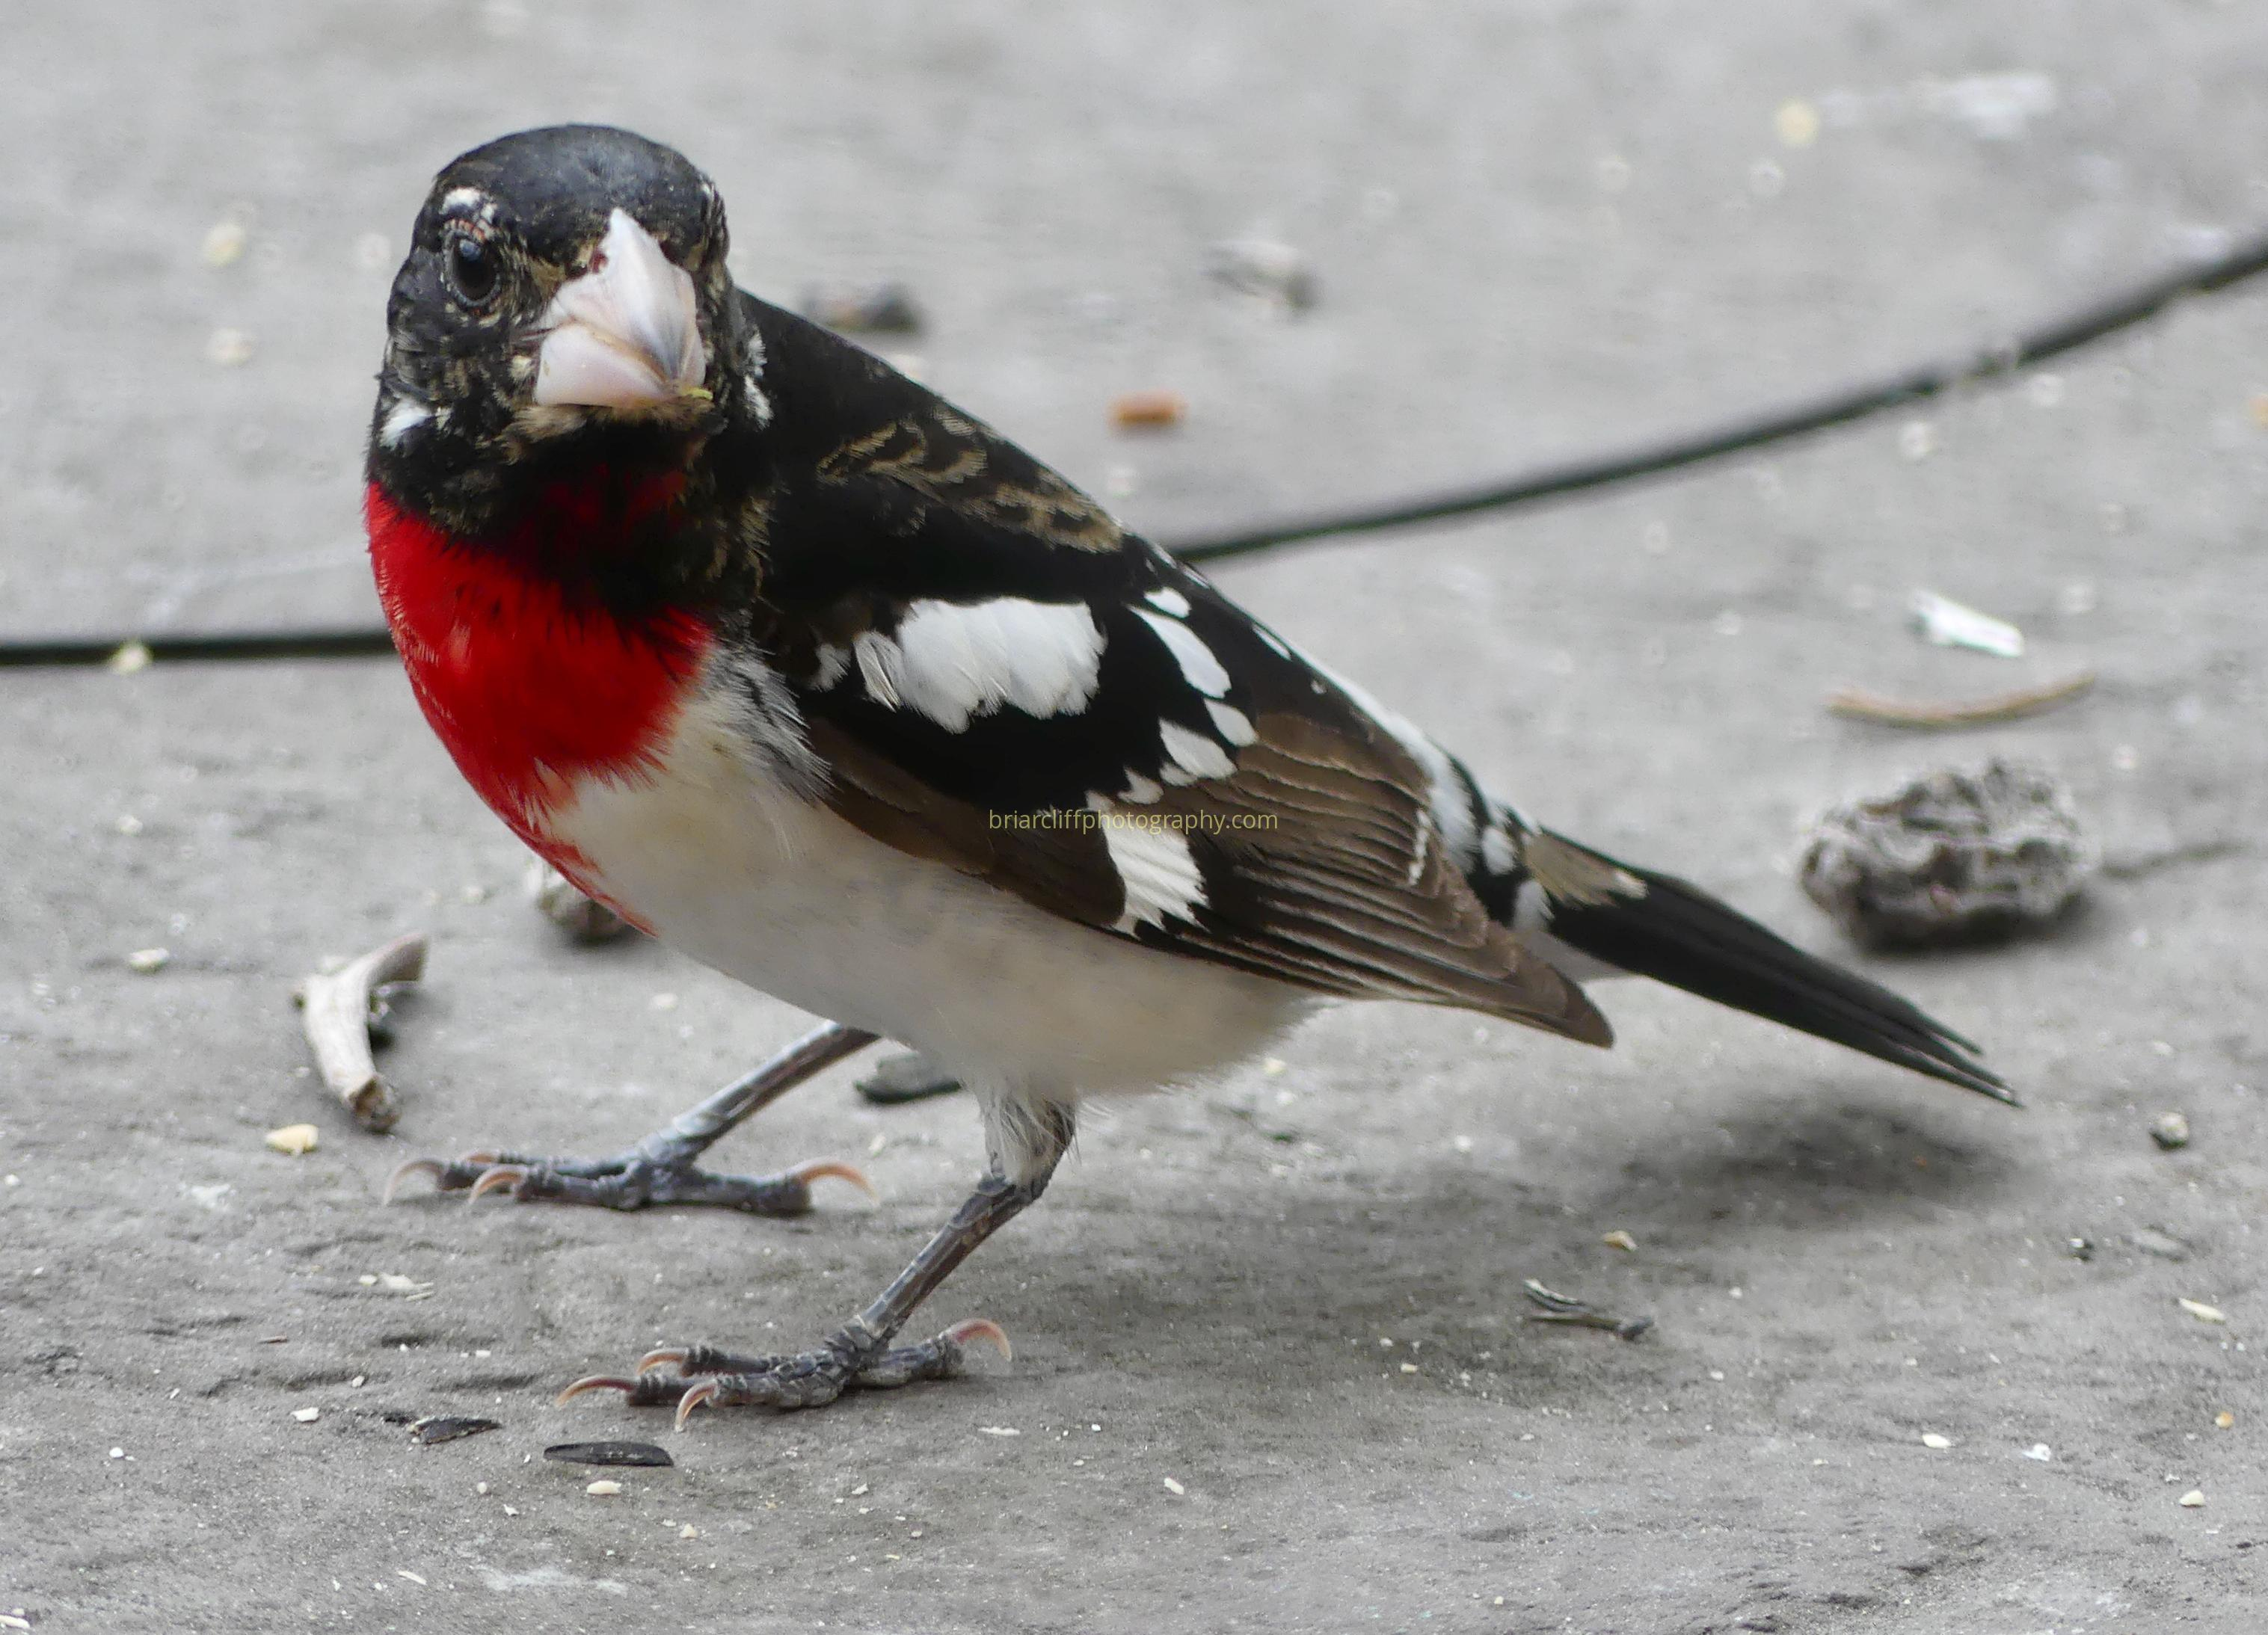 Male Red-breasted Grosbeak